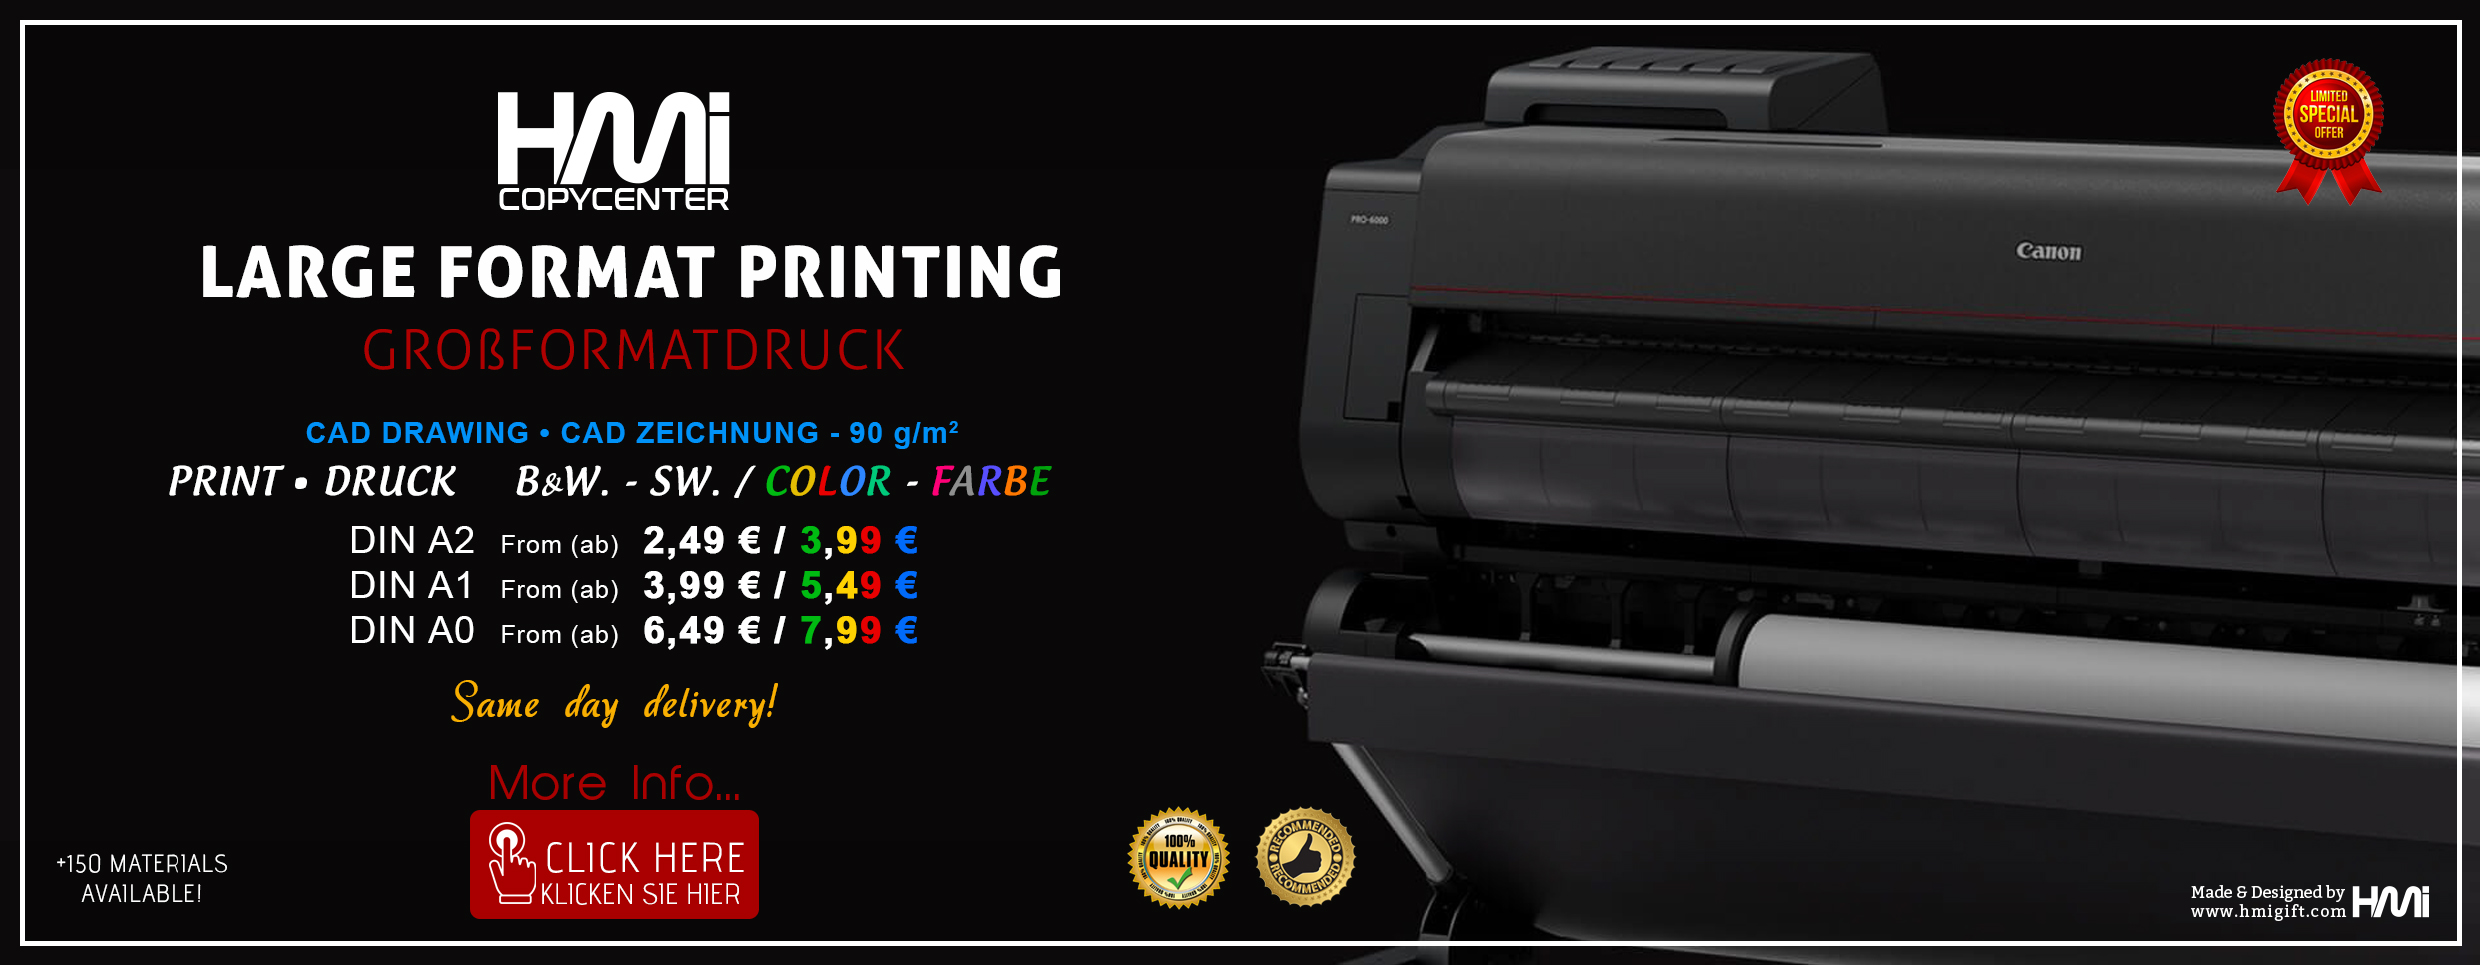 Large format Printing in Bochum | Printing in Bochum | Professional Printing services in Bochum | Copy and Print Services in Bochum | Photo and poster printing in Bochum